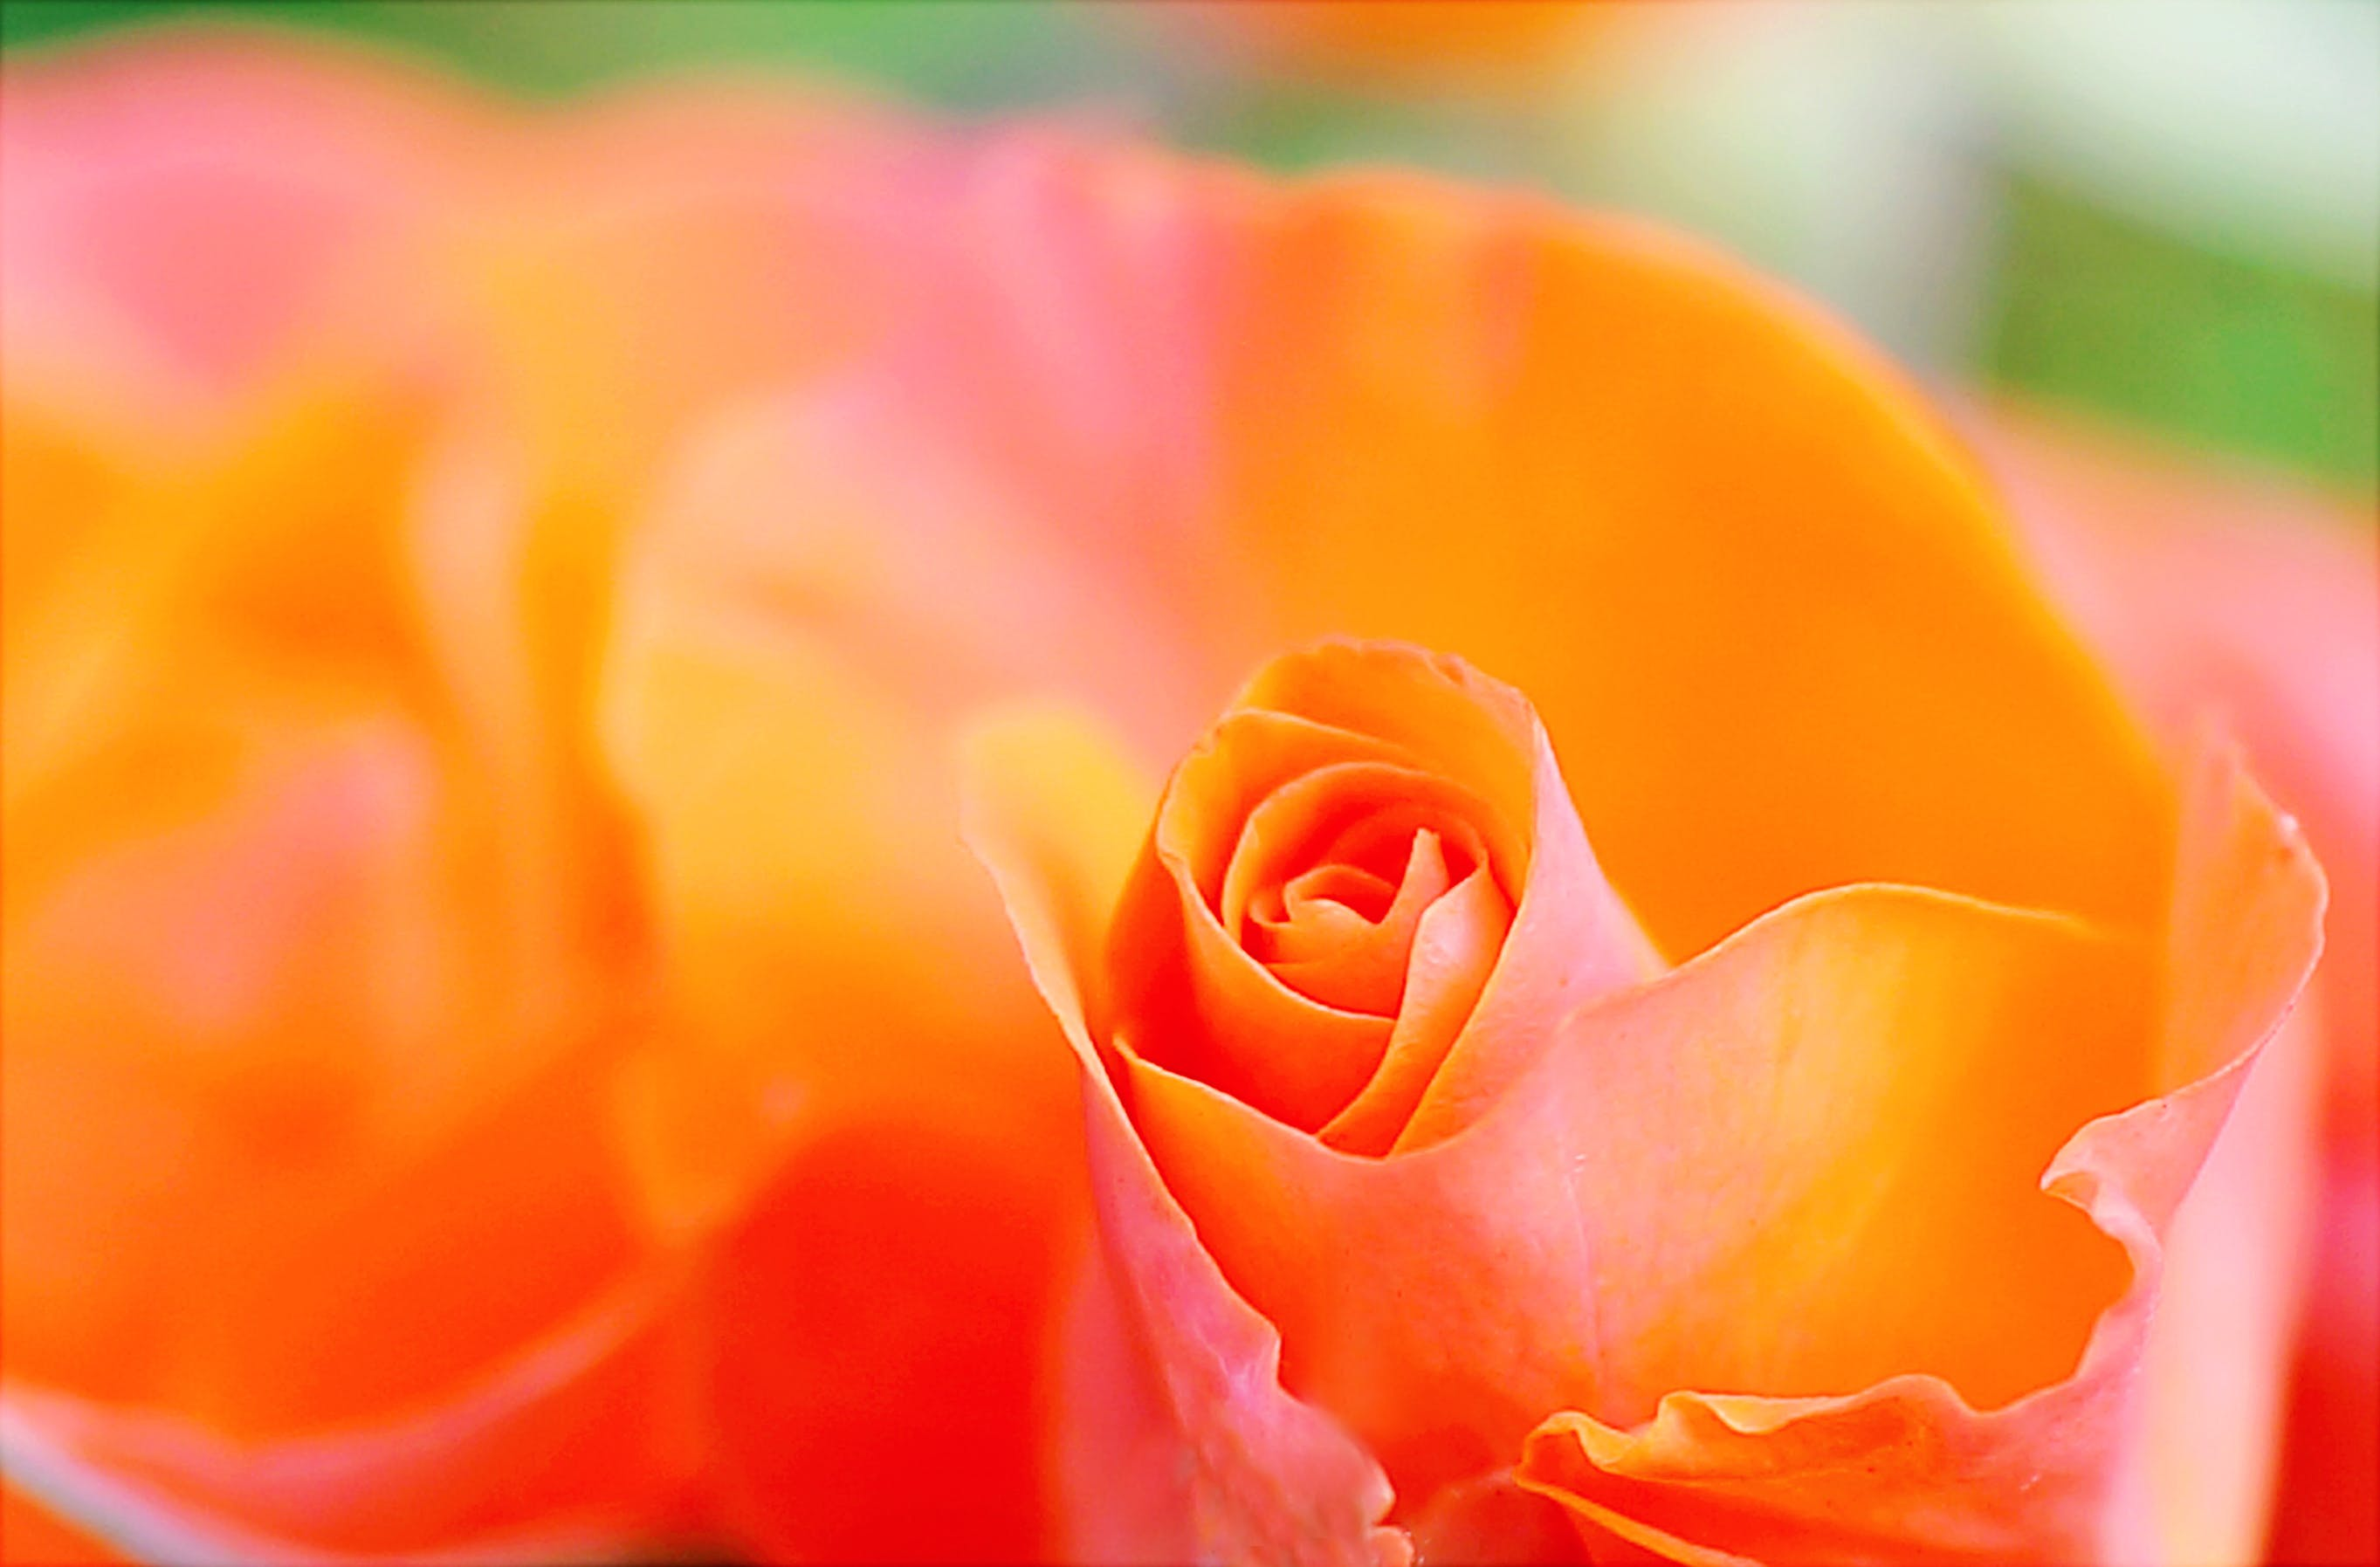 Shallow Focus Photography of Orange Petal Flower